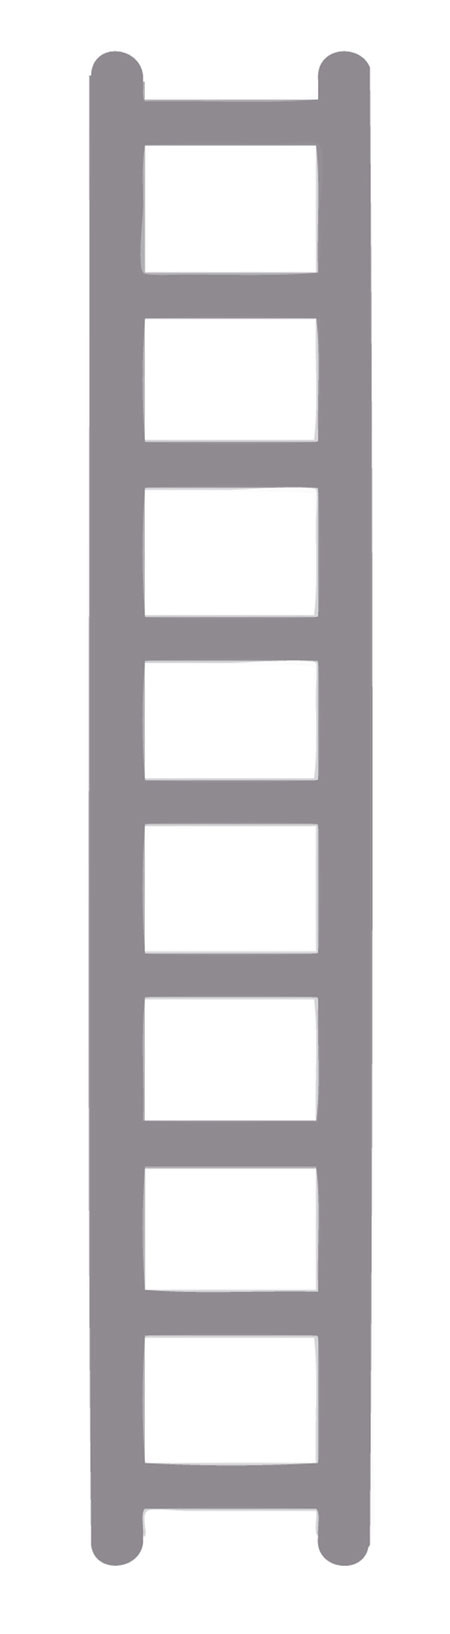 Ladder | Free Early Years & Primary Teaching Resources (EYFS & KS1)